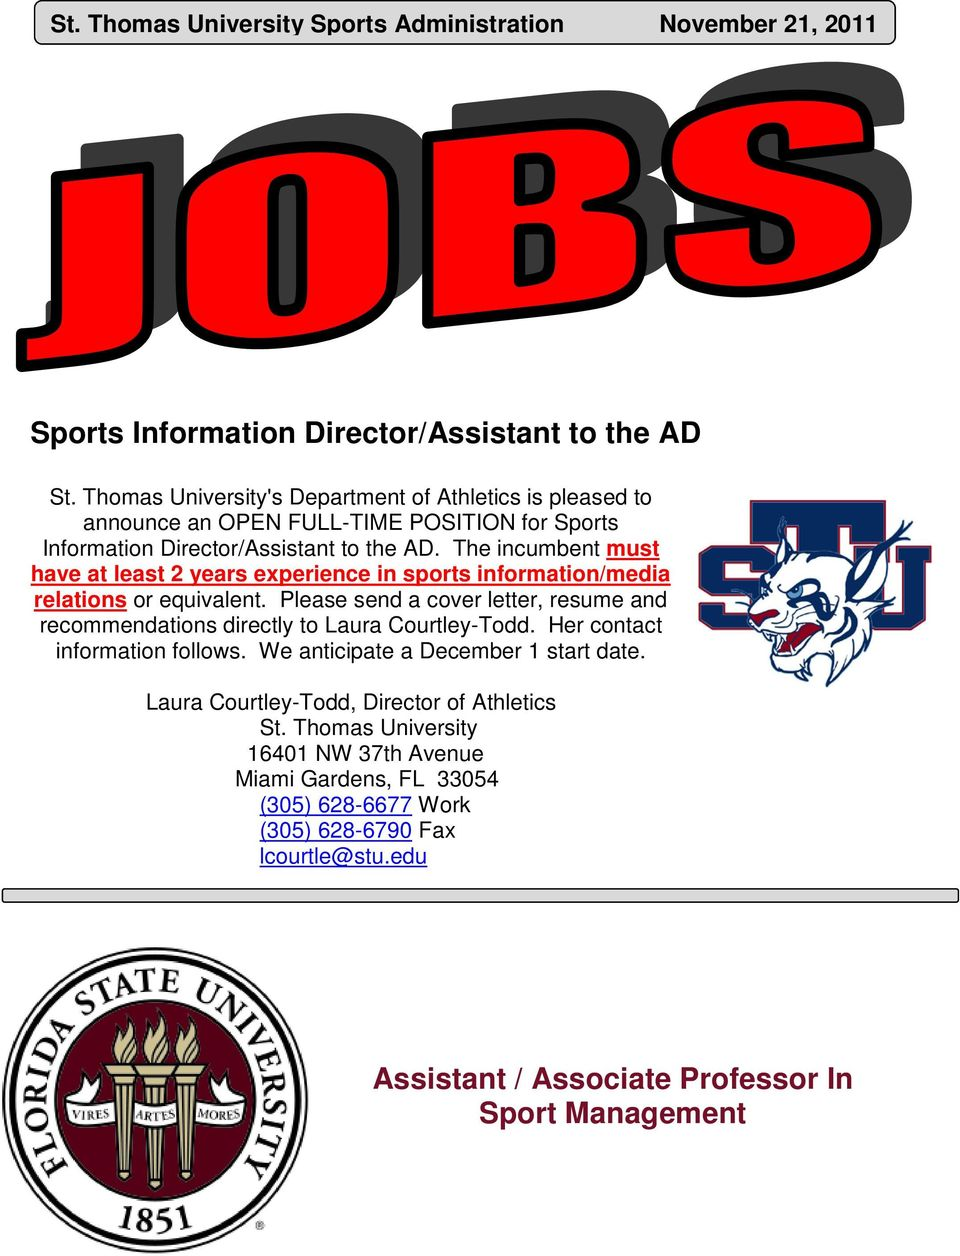 The incumbent must have at least 2 years experience in sports information/media relations or equivalent.